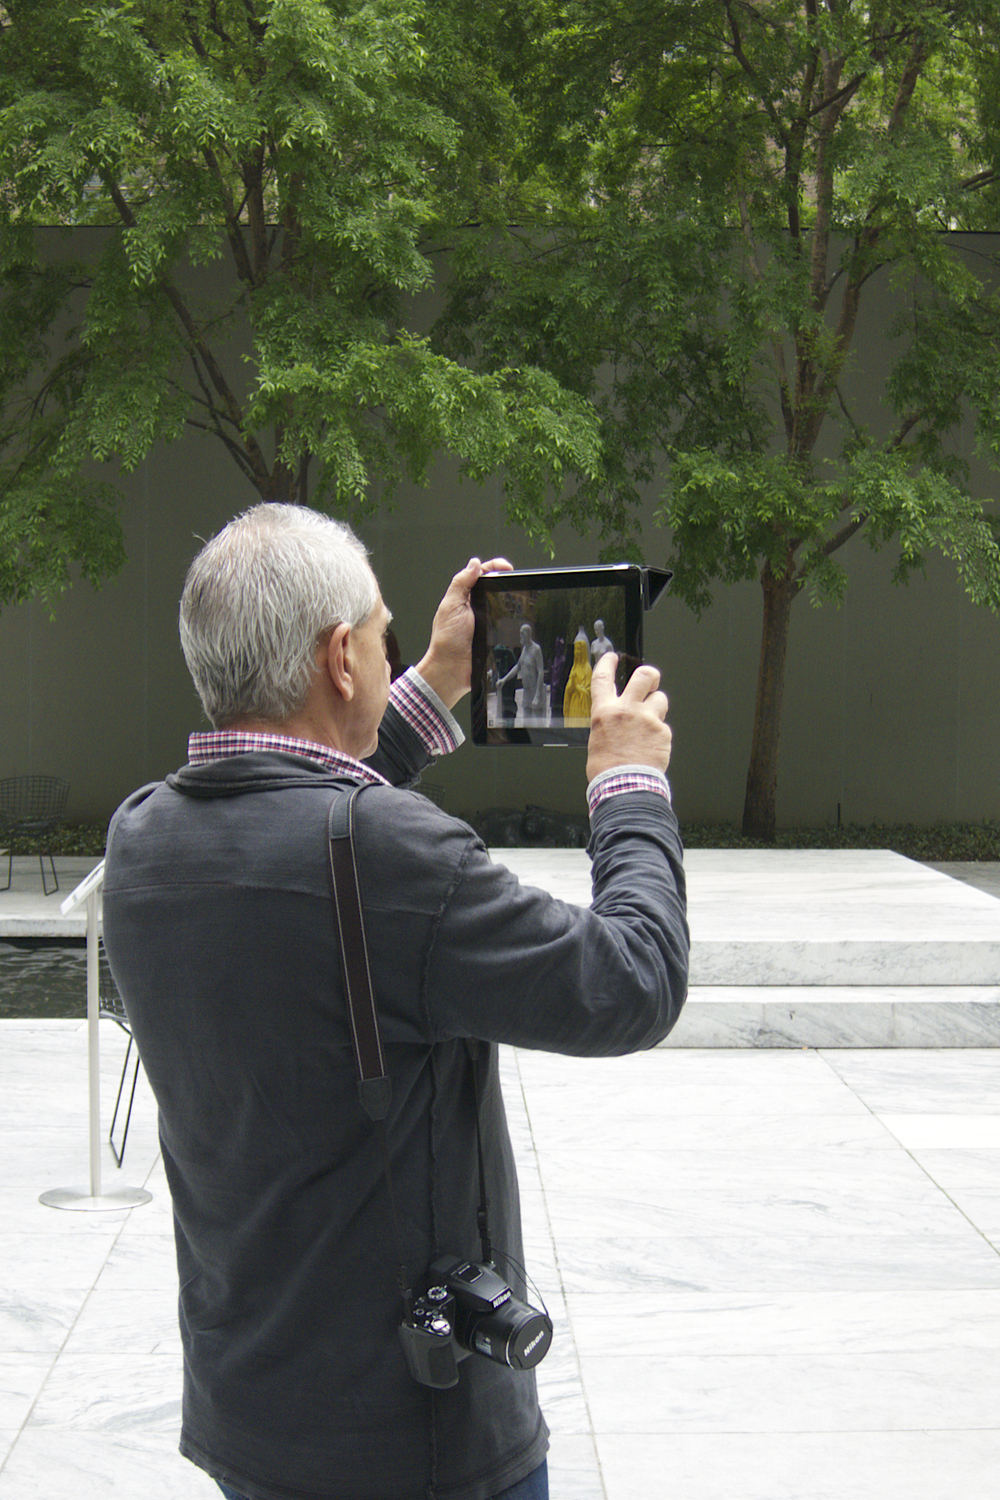 NYC Icons: Hip iPad Photographer at MoMA